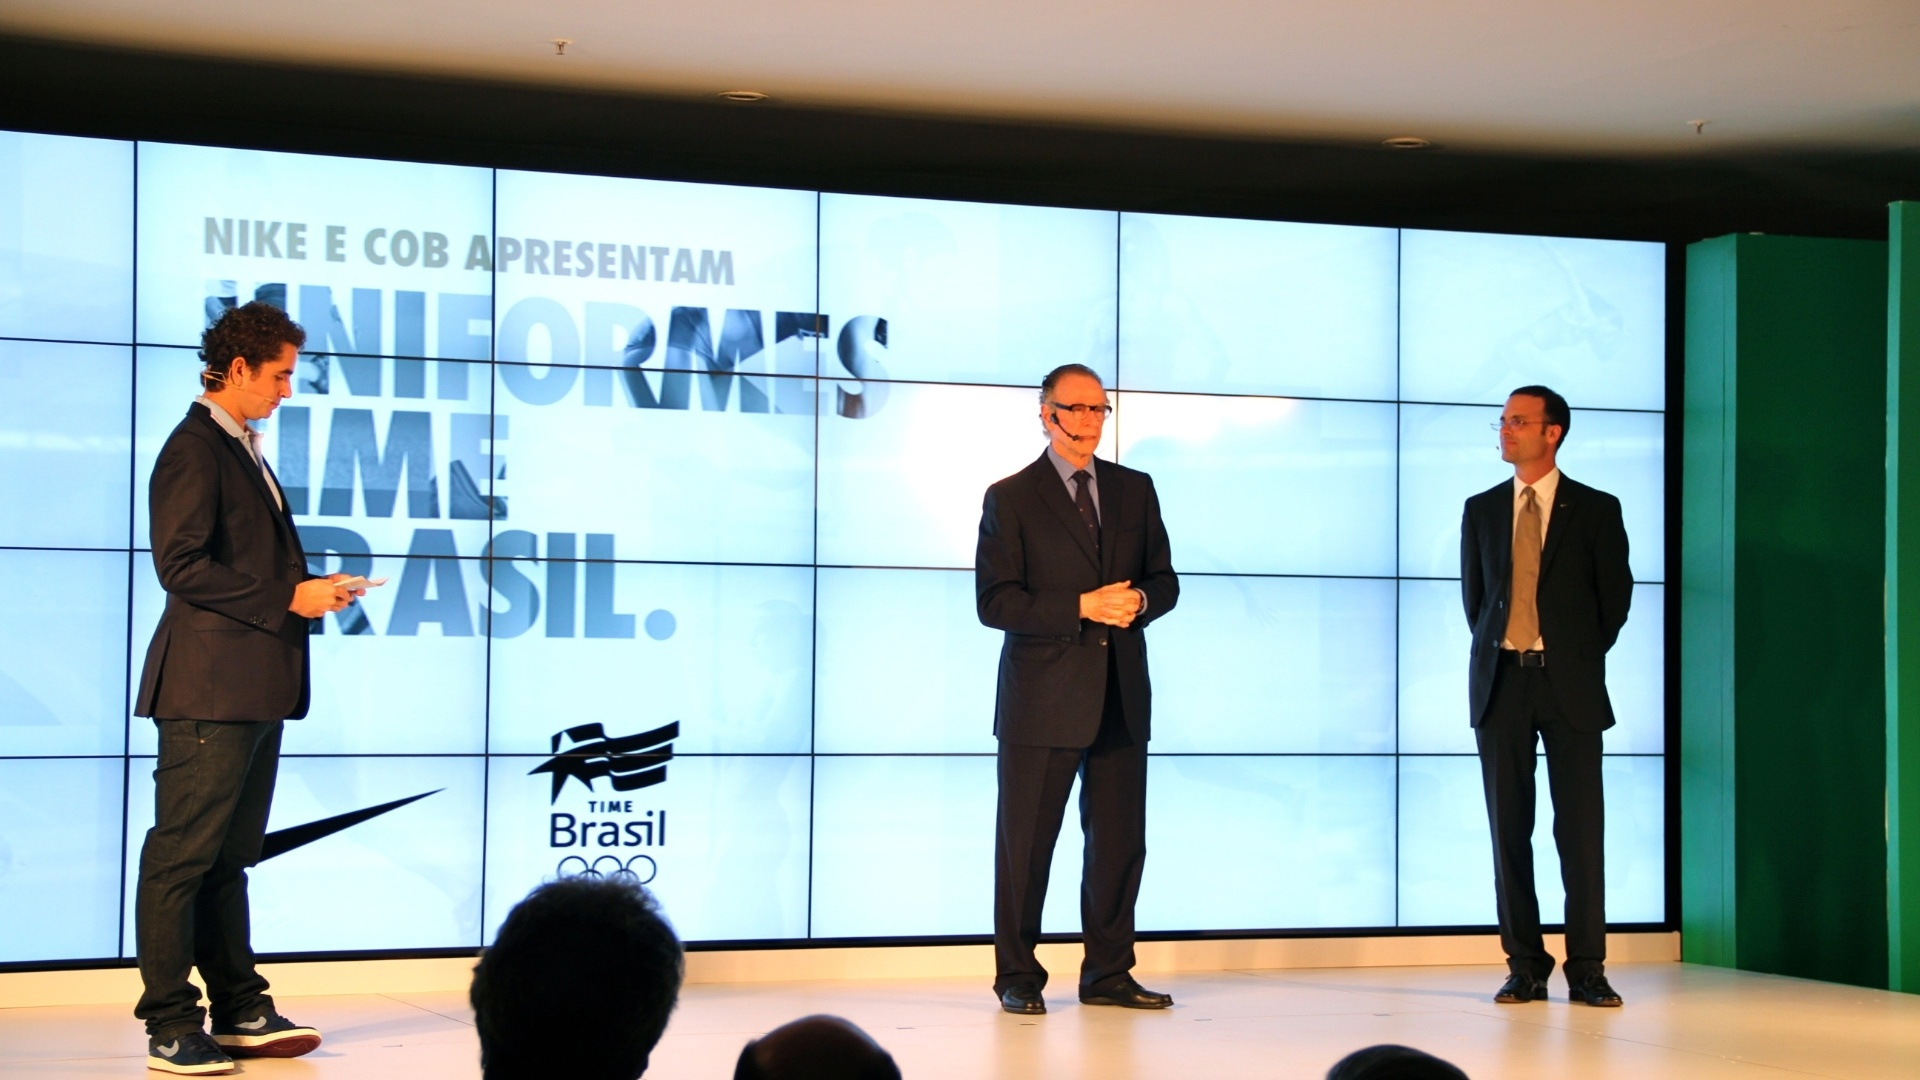 Carlos Nuzman, presidente do COB, e Felipe Andreoli, do CQC, apresentam novo uniforme olmpico do Brasil